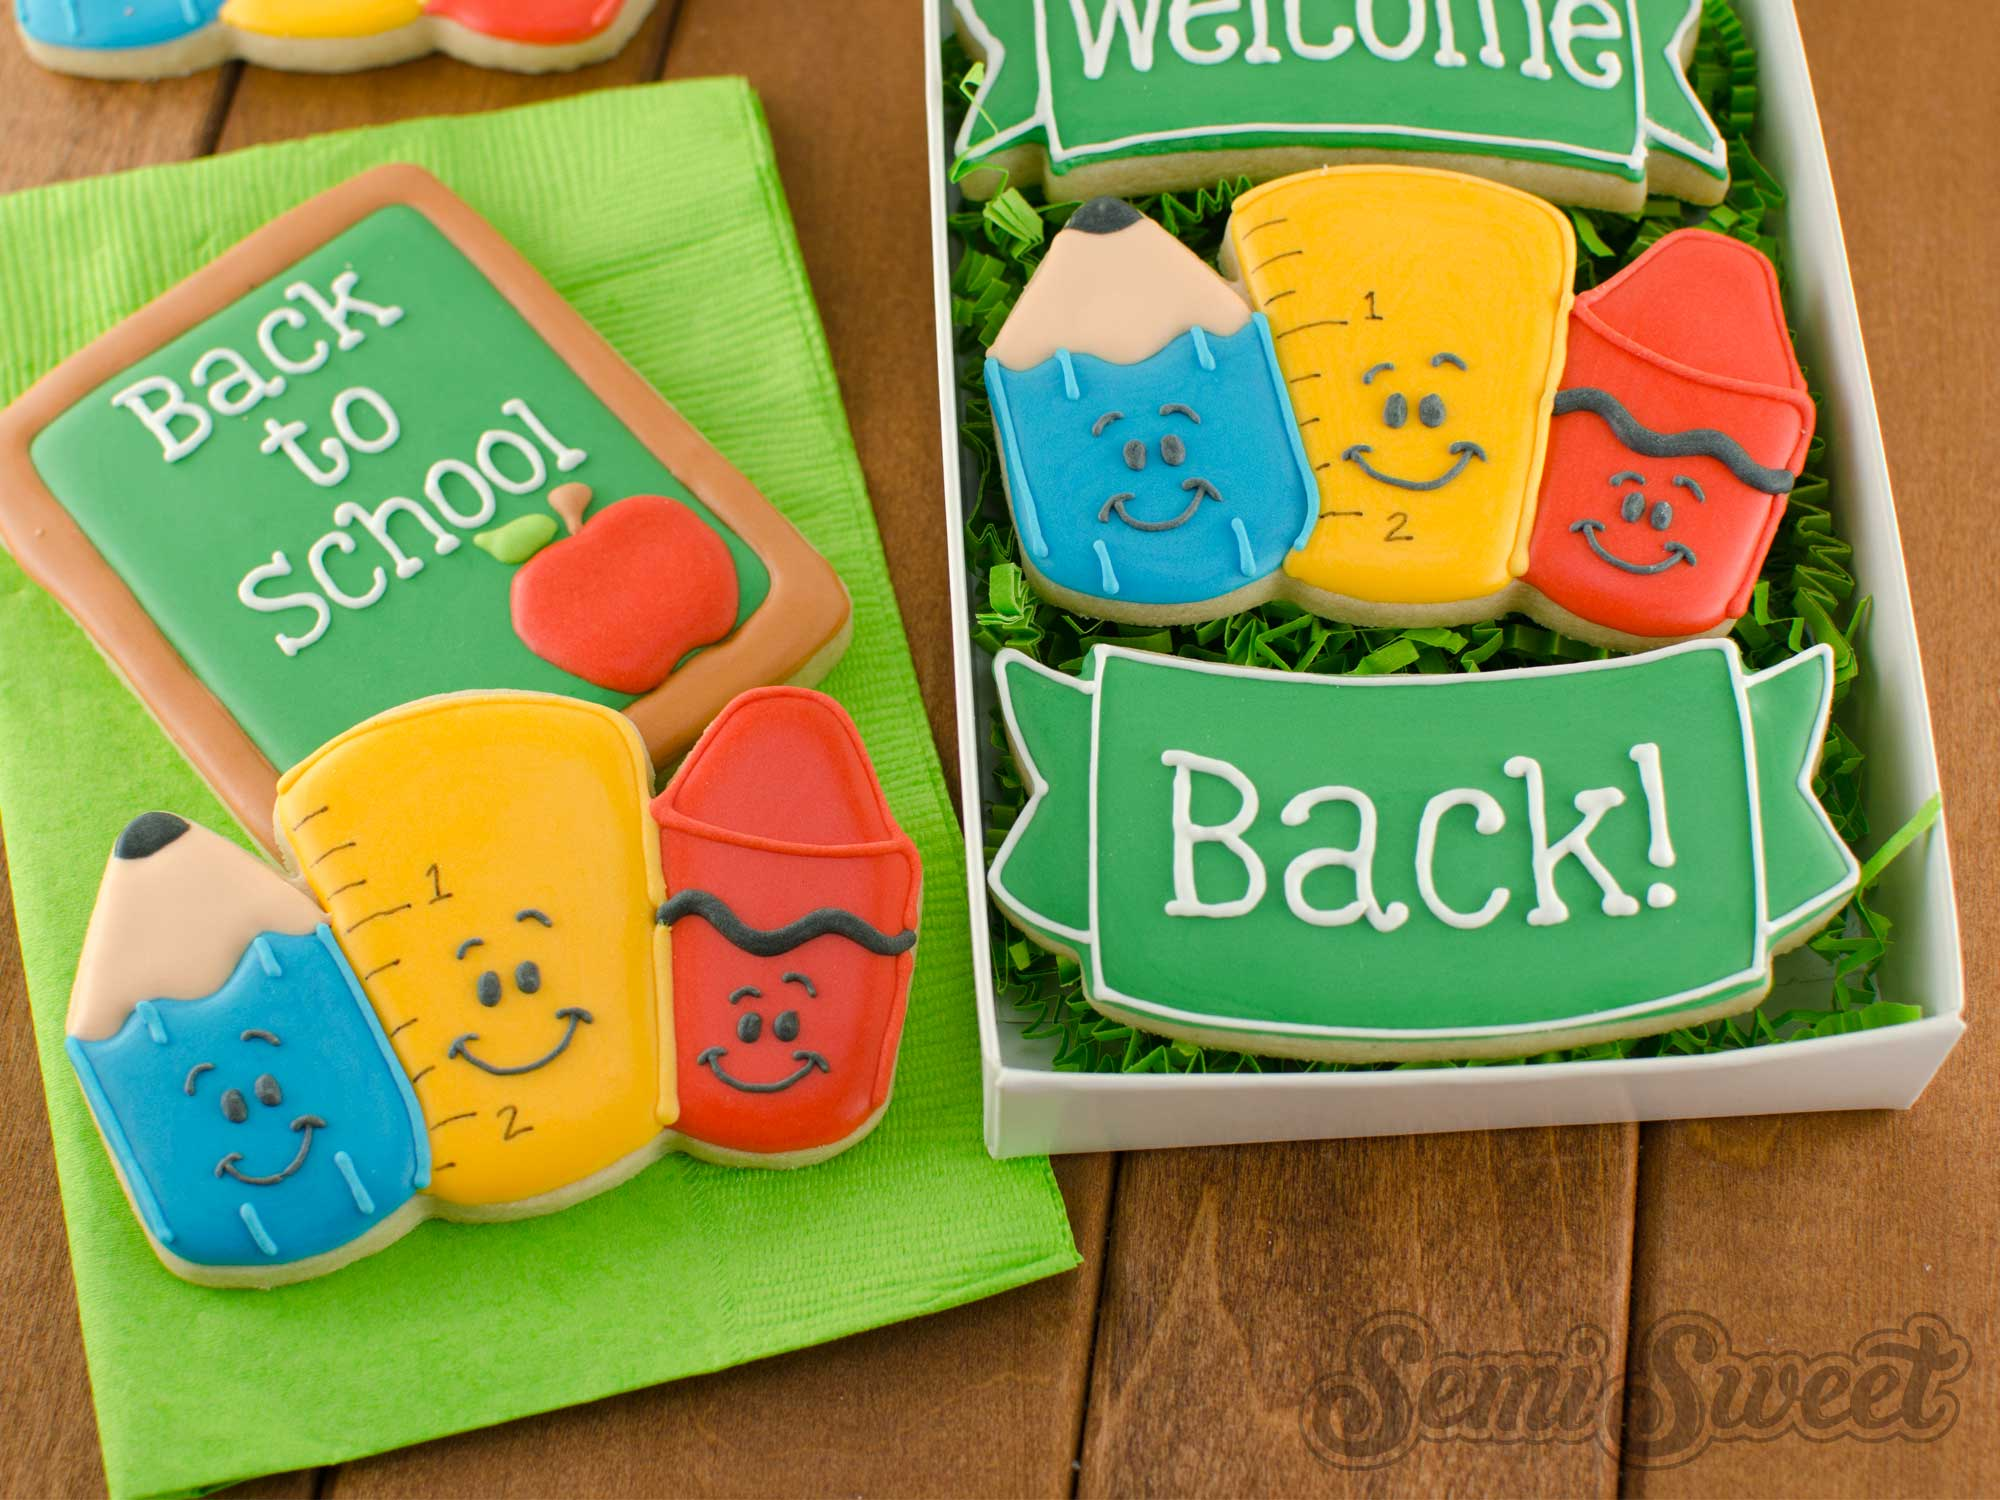 How to Make School Supply Cookies by SemiSweetDesigns.com